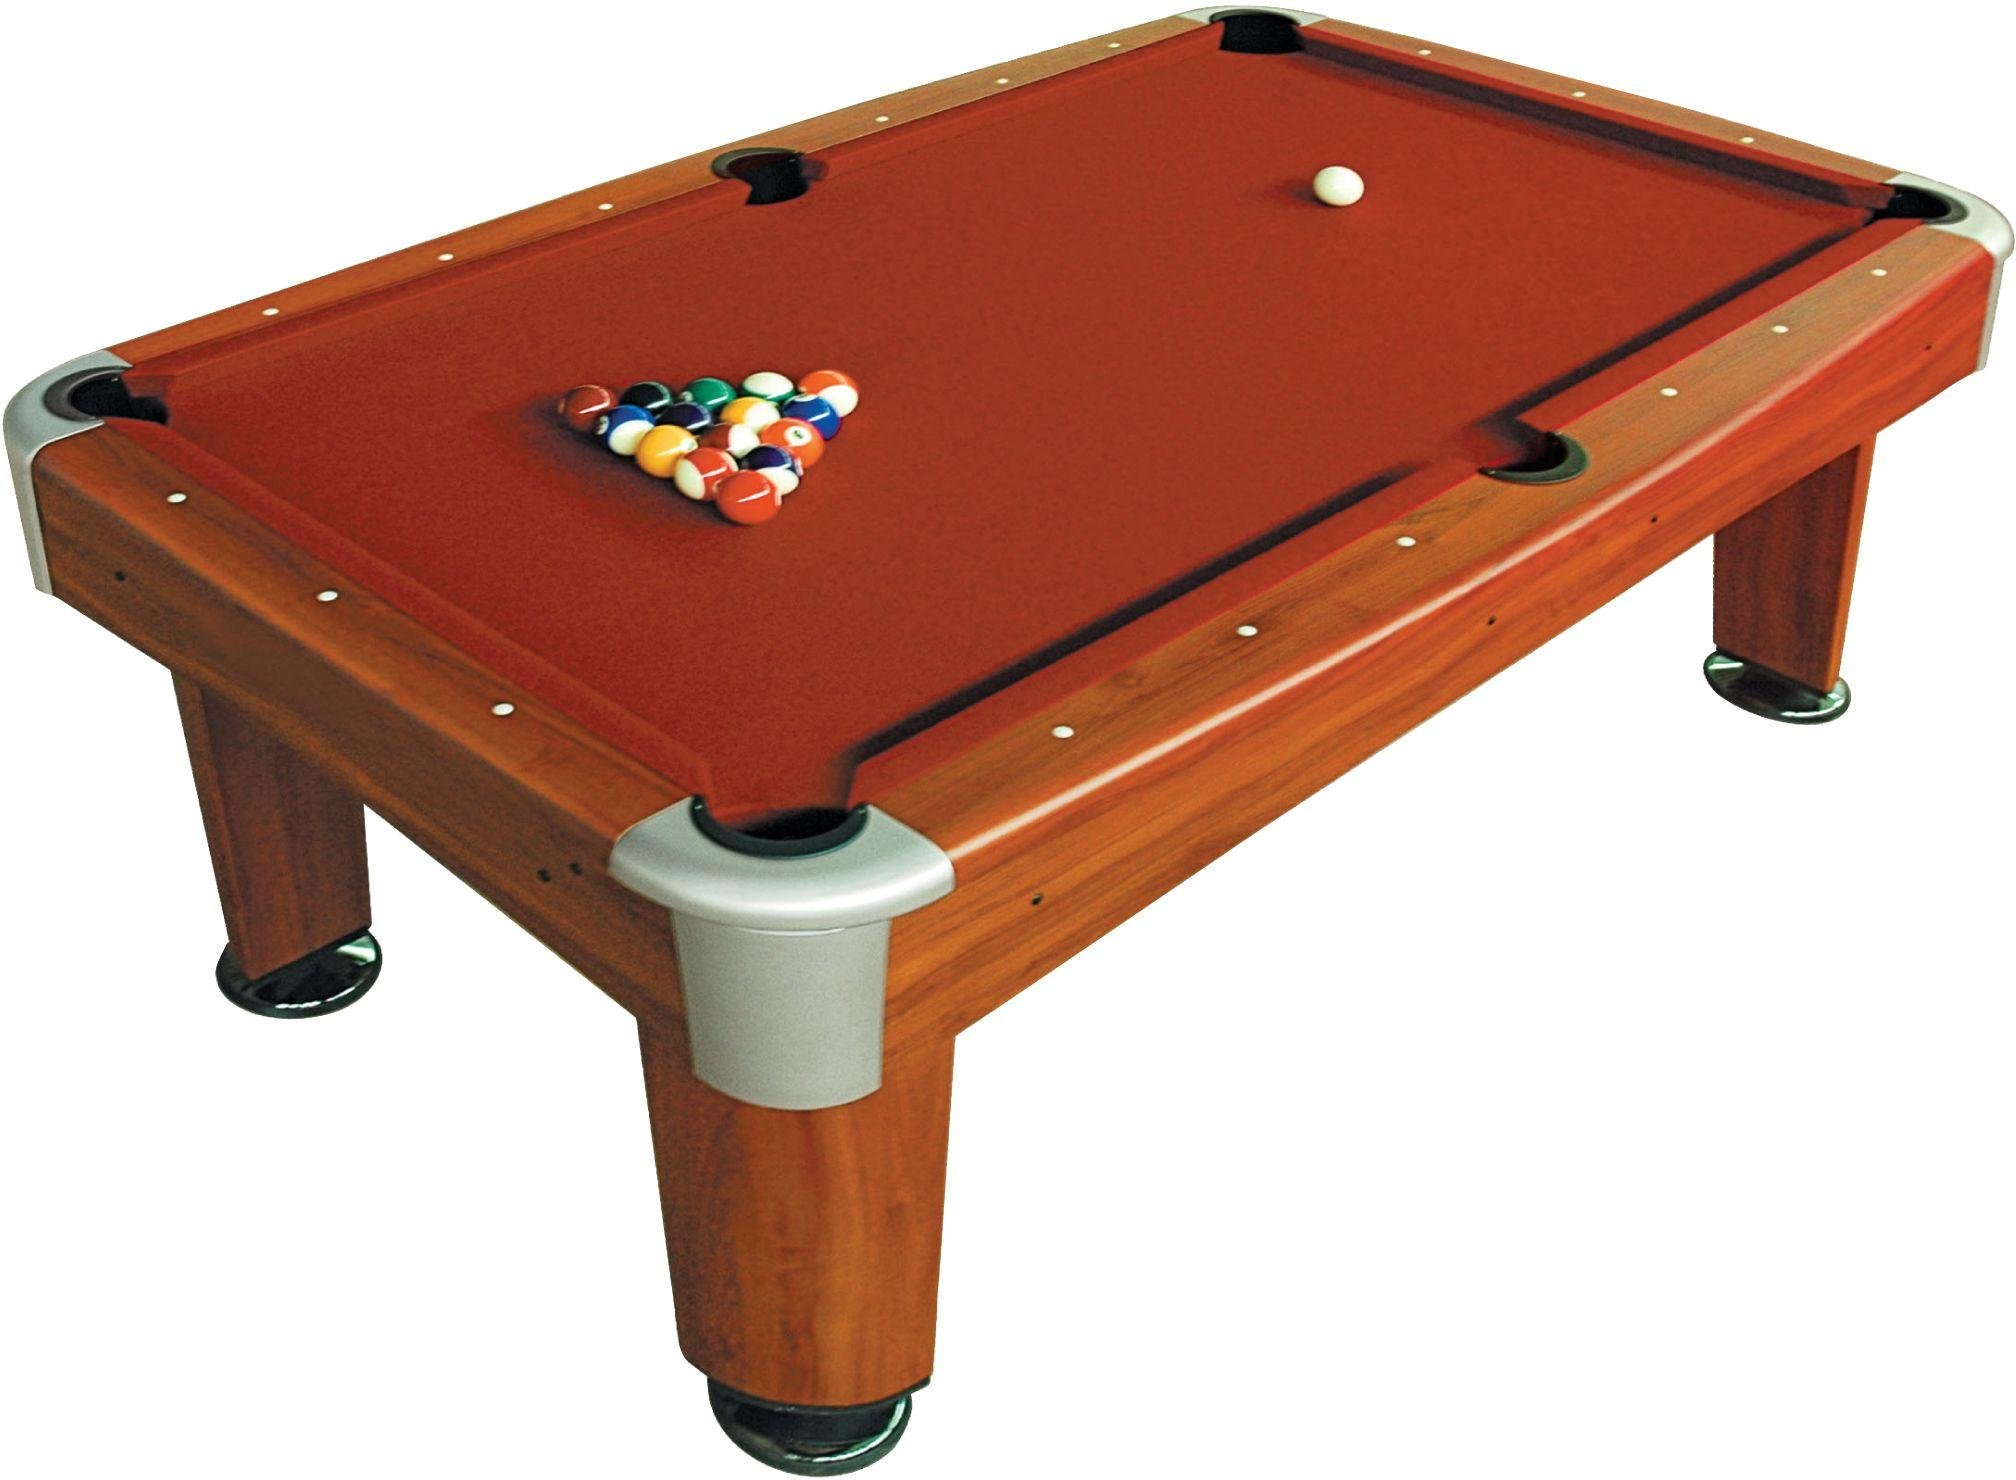 Image of BCE - Rosemont 7ft Pool Table